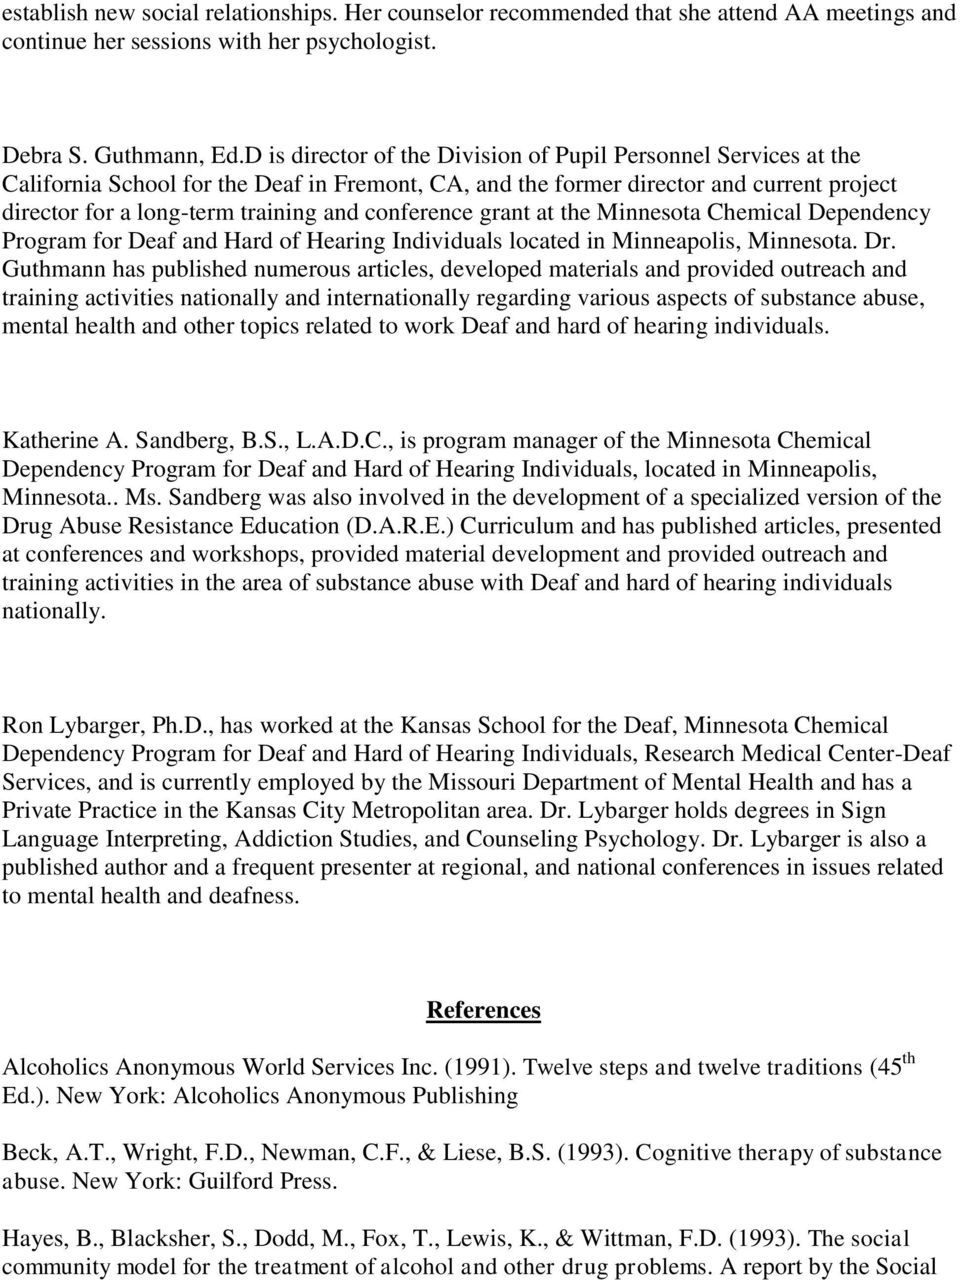 conference grant at the Minnesota Chemical Dependency Program for Deaf and Hard of Hearing Individuals located in Minneapolis, Minnesota. Dr.